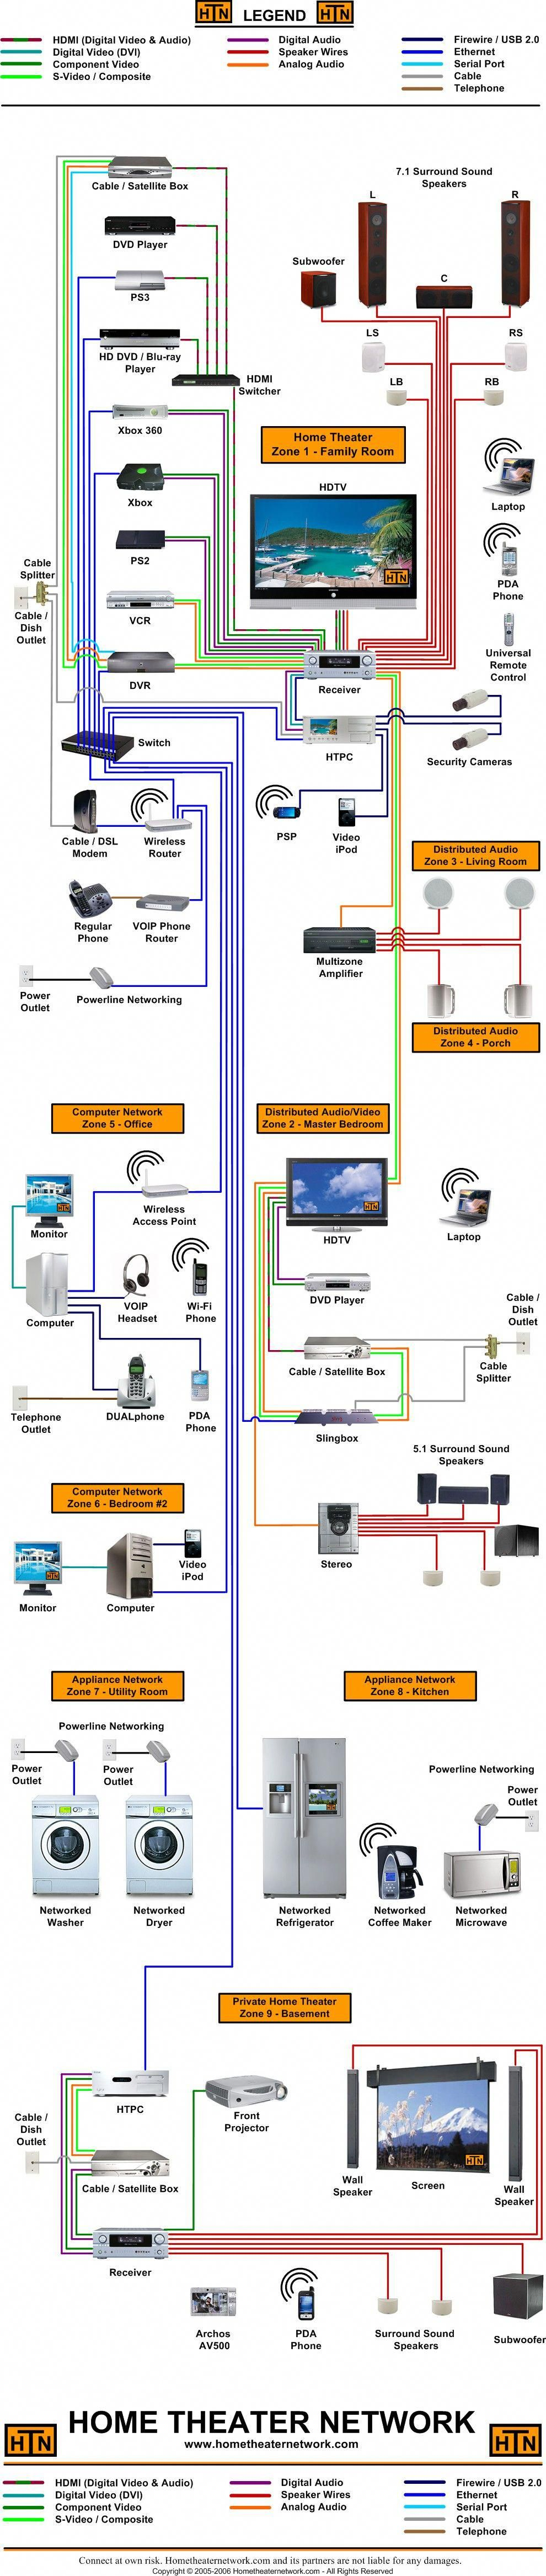 home theater diagram will not be leaving the sofa thank you nicely sob  hometheaterideas also rh